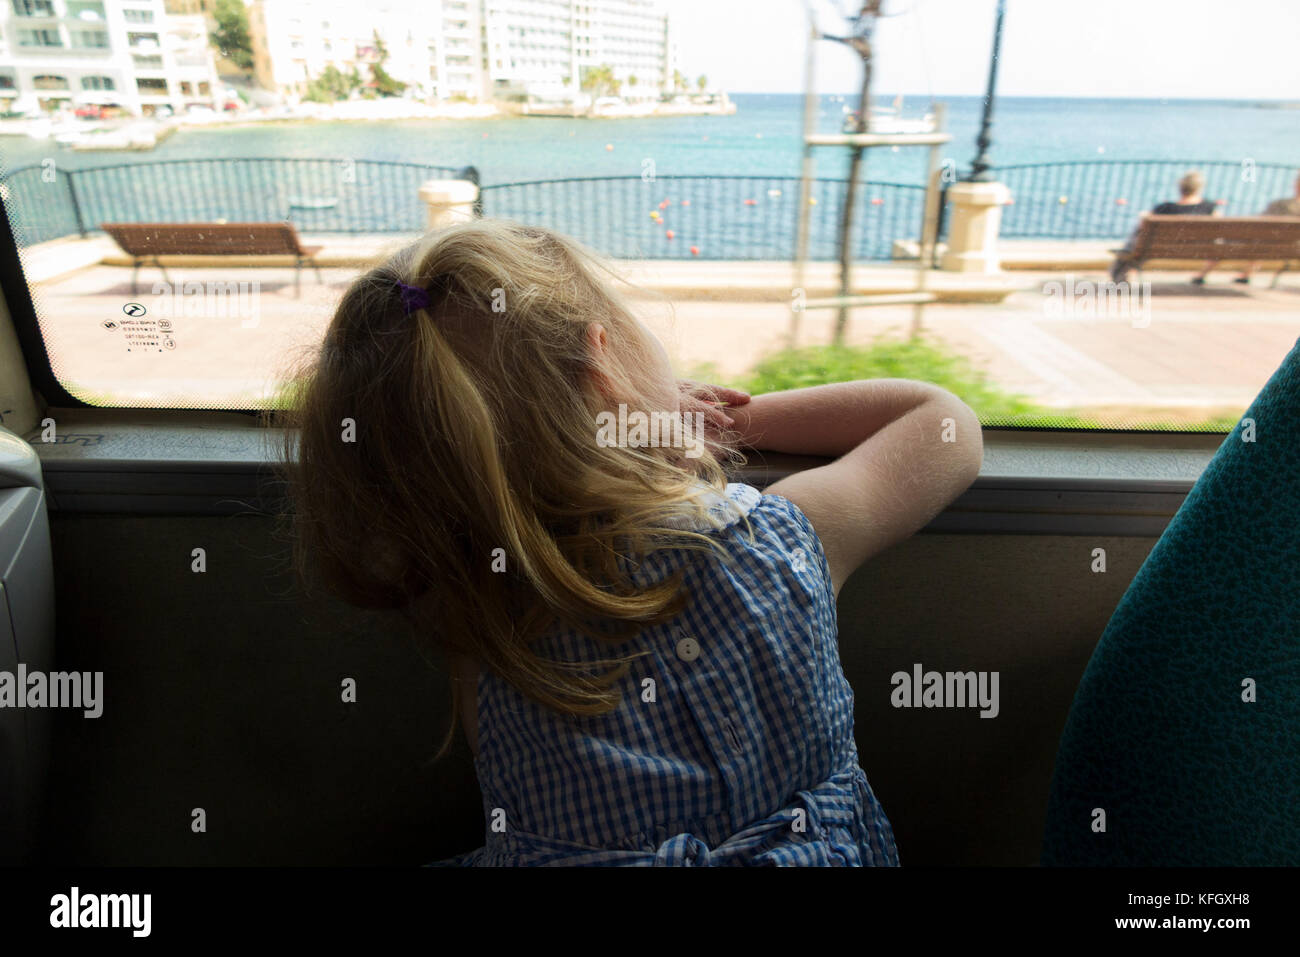 Three year old girl / child / passenger / passengers travelling on a public bus / using public transport in St Julians - Stock Image